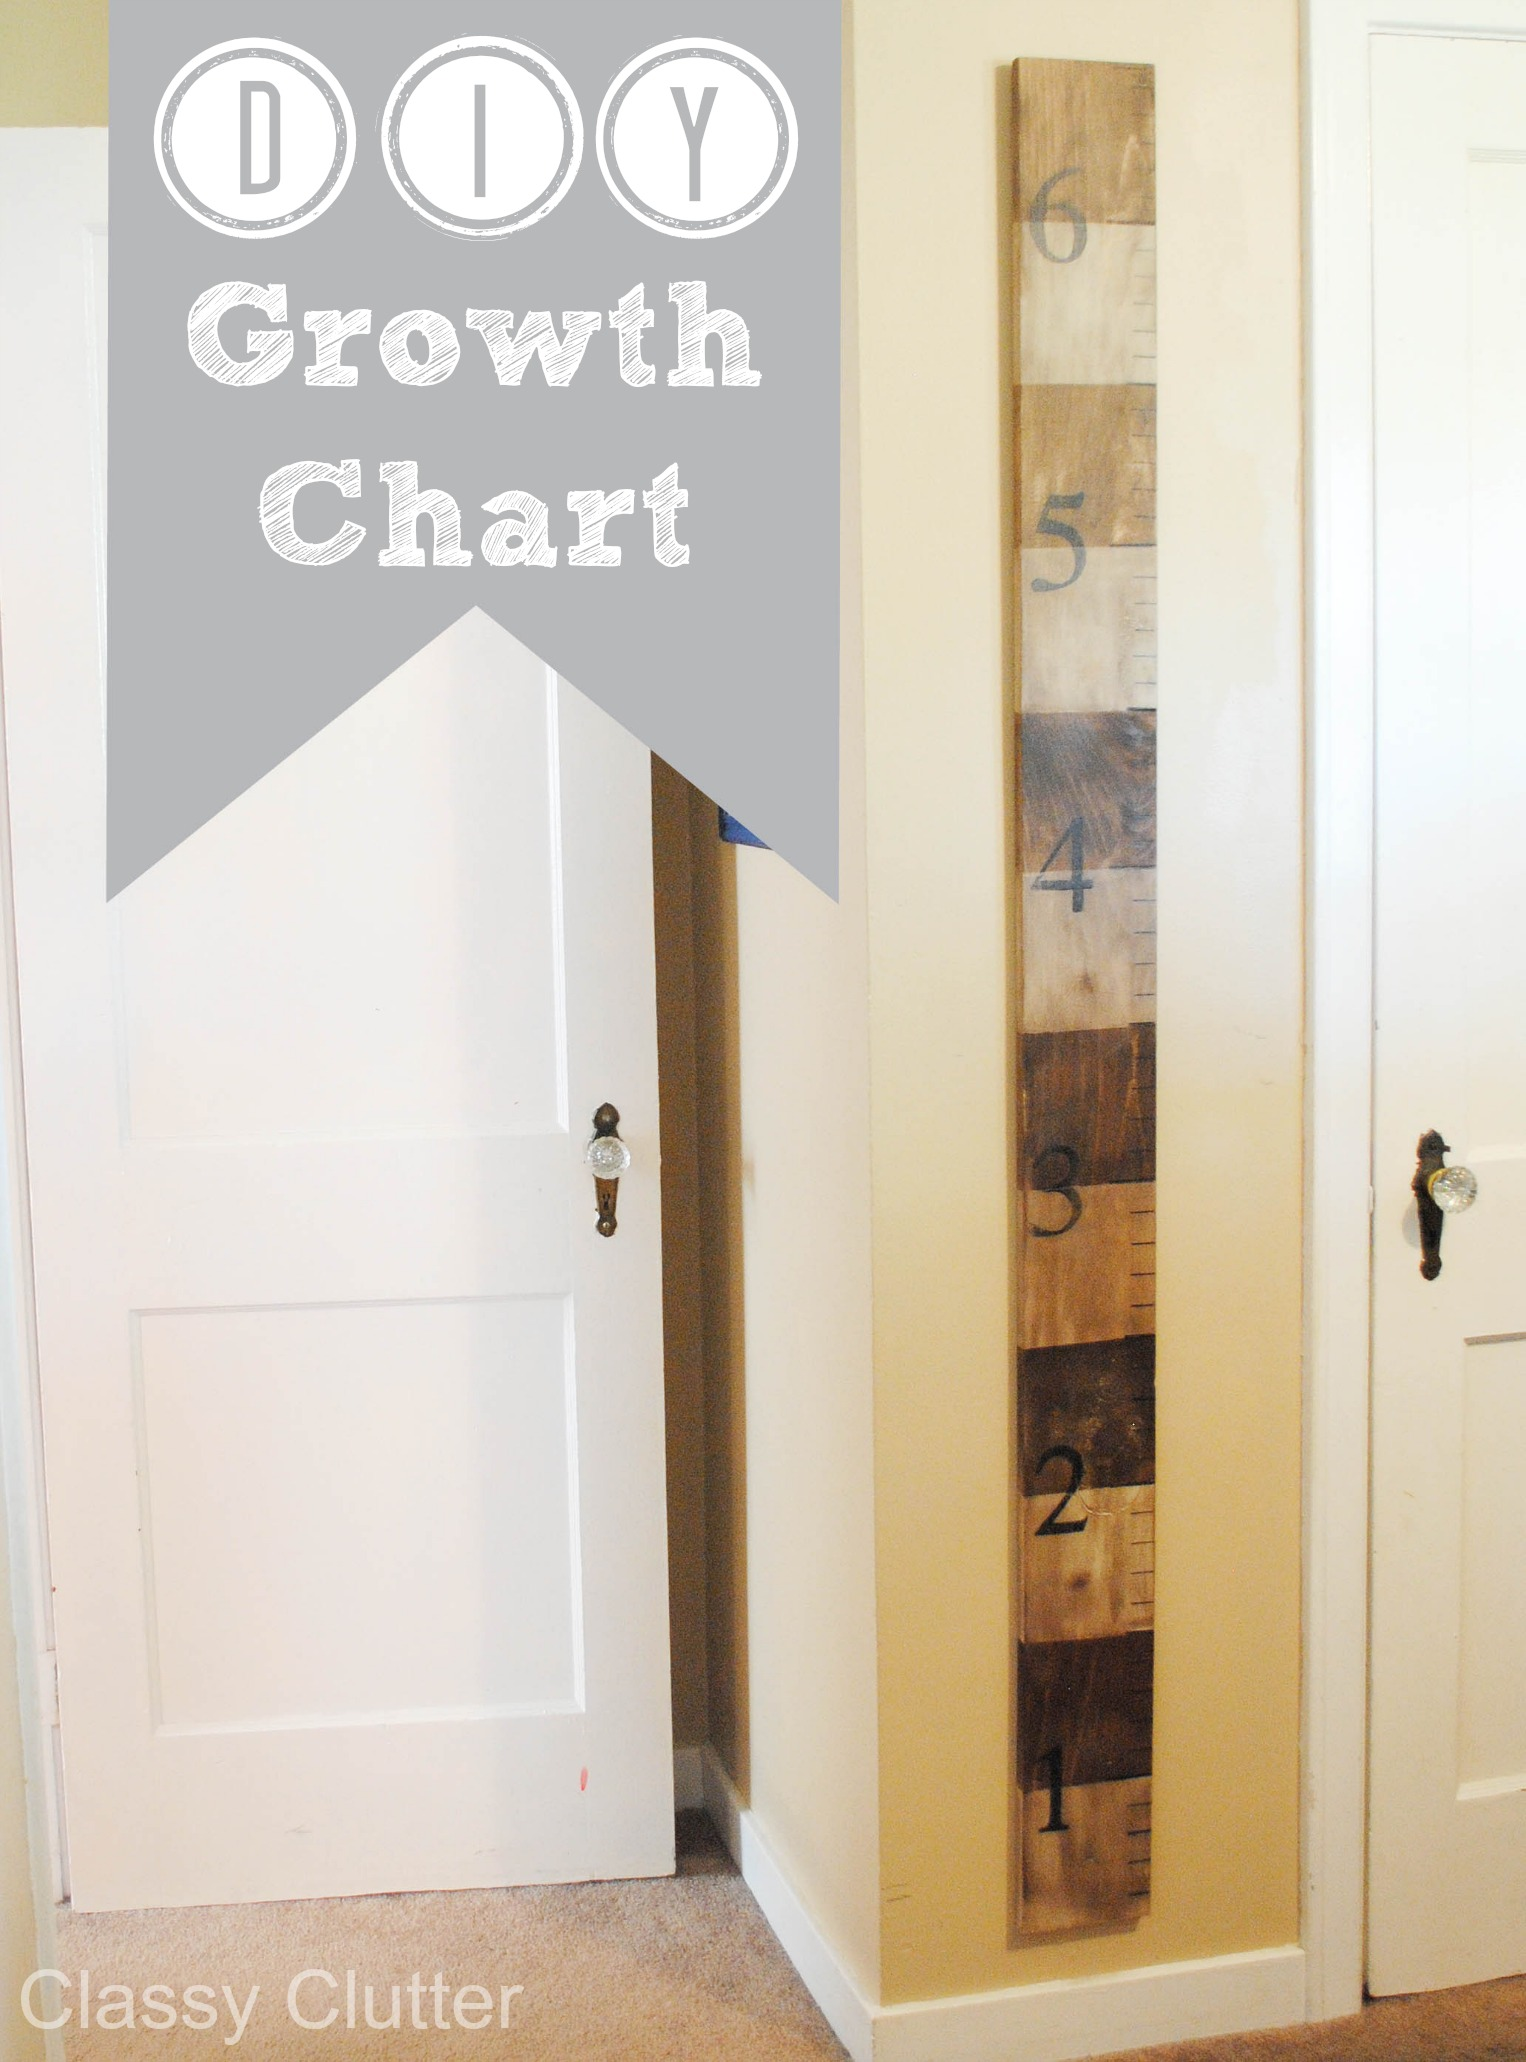 Diy Wooden Growth Chart Tutorial Classy Clutter